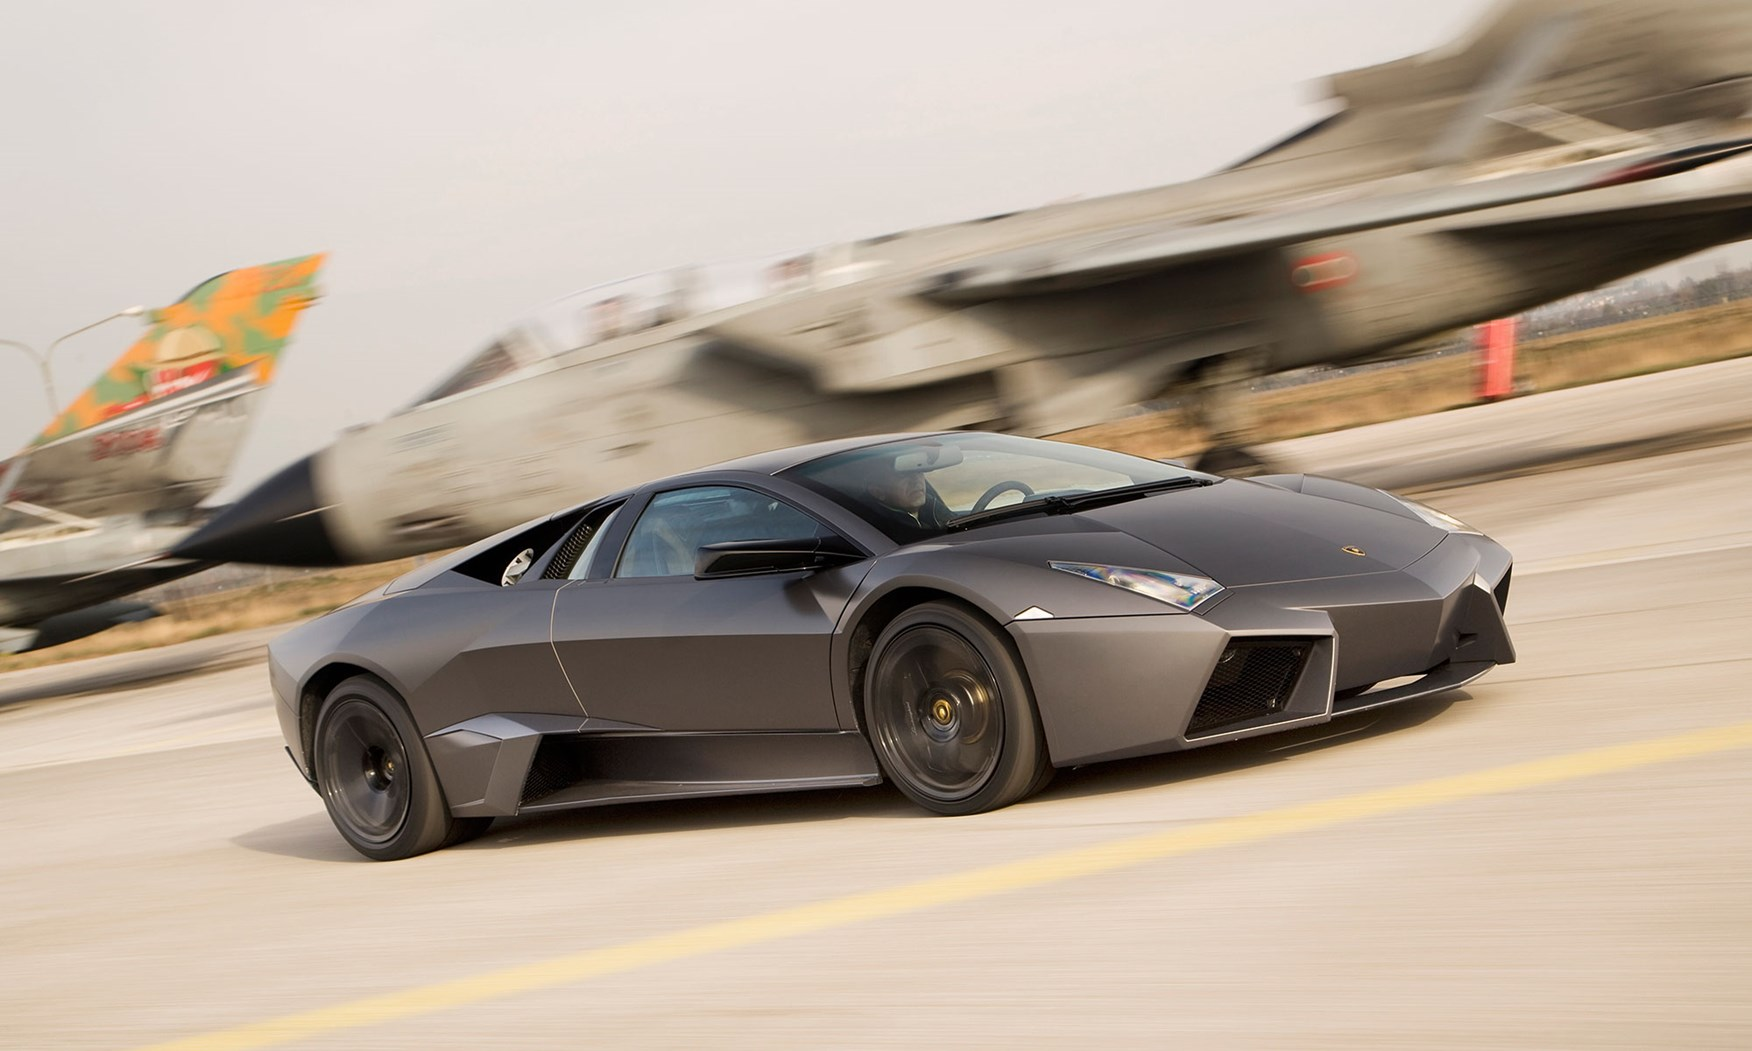 sale for countach cars anniversary used on lamborghini jamesedition owner cheap